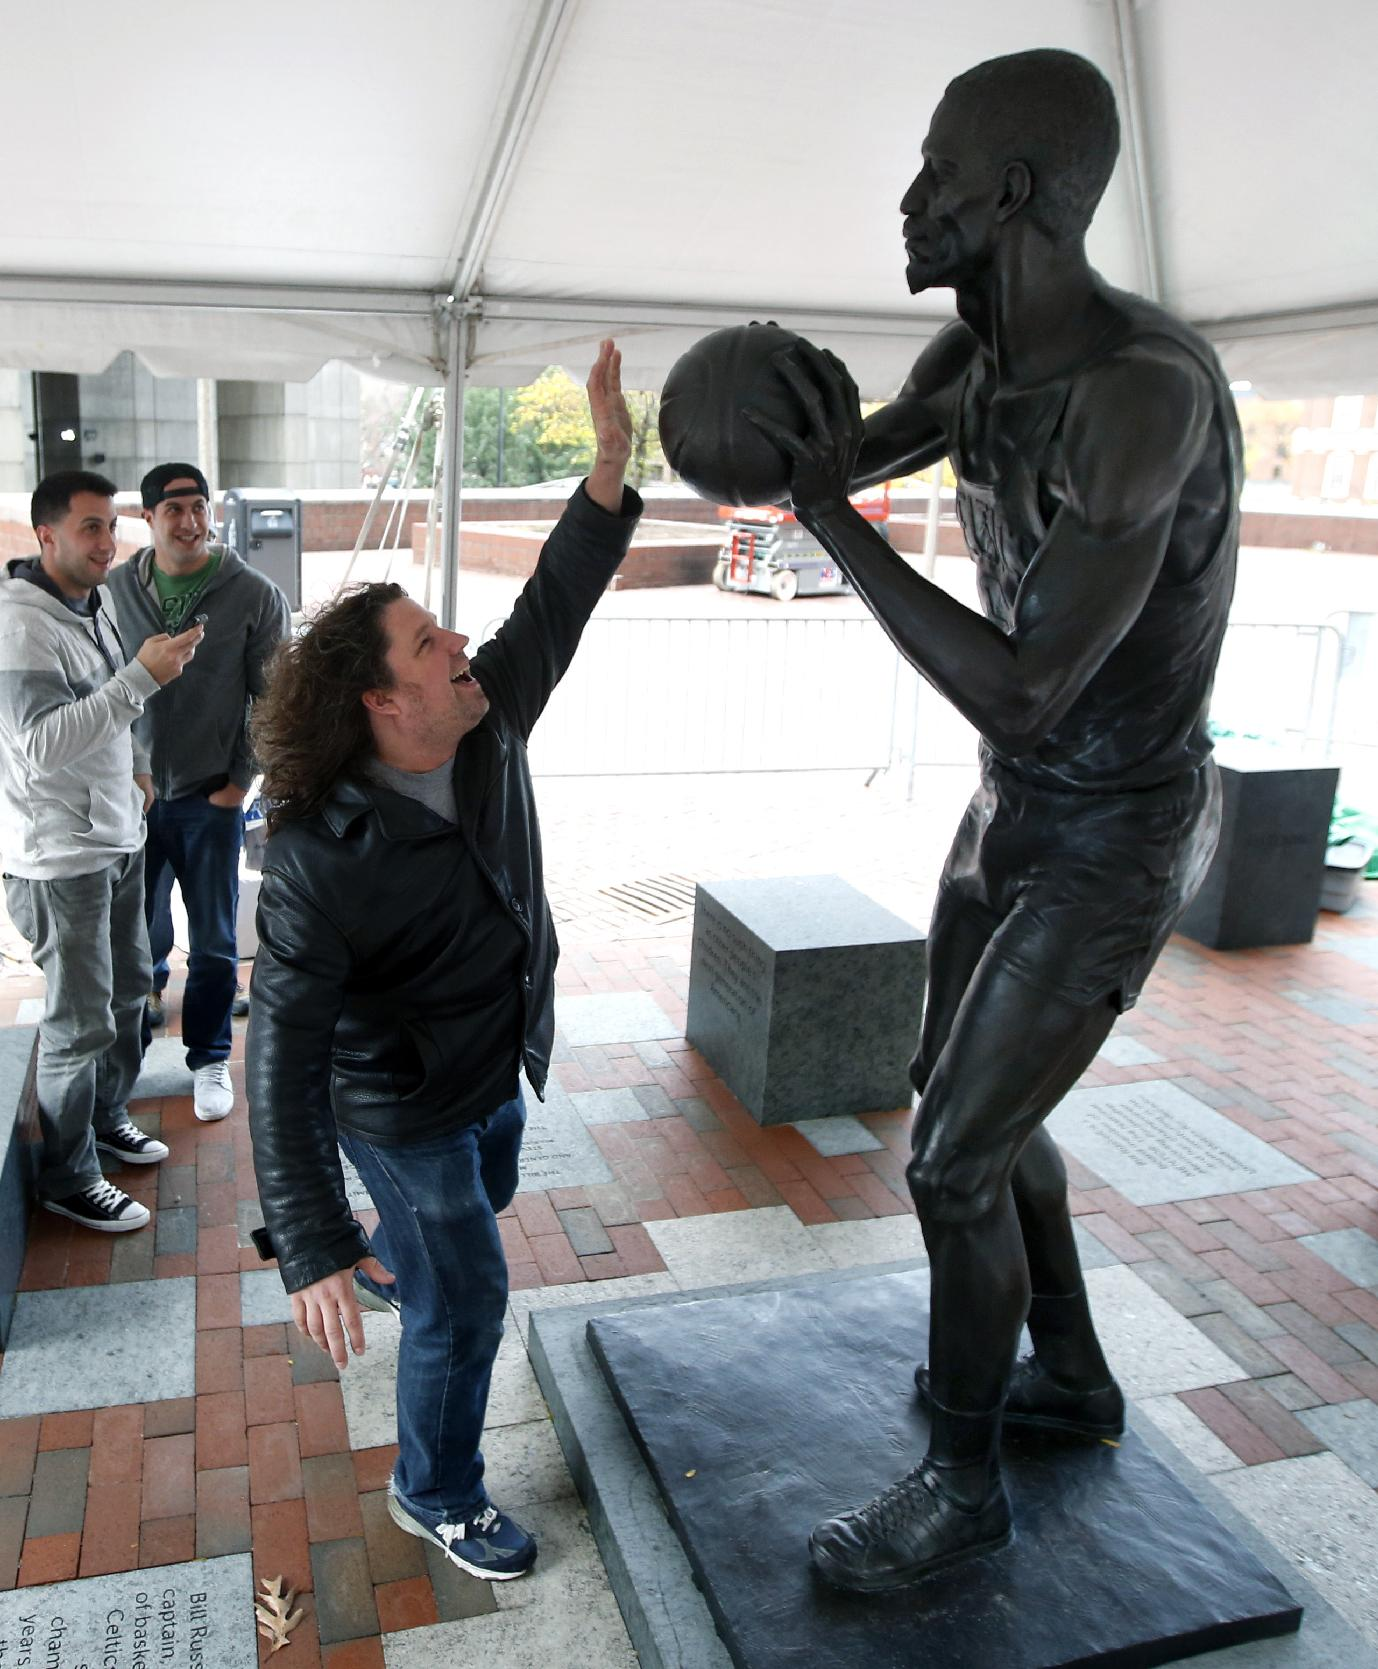 Scott Damgaard, of Boston, reaches up to a statue of former Boston Celtics basketball star Bill Russell after it was unveiled at City Hall Plaza in Boston, Friday, Nov. 1, 2013